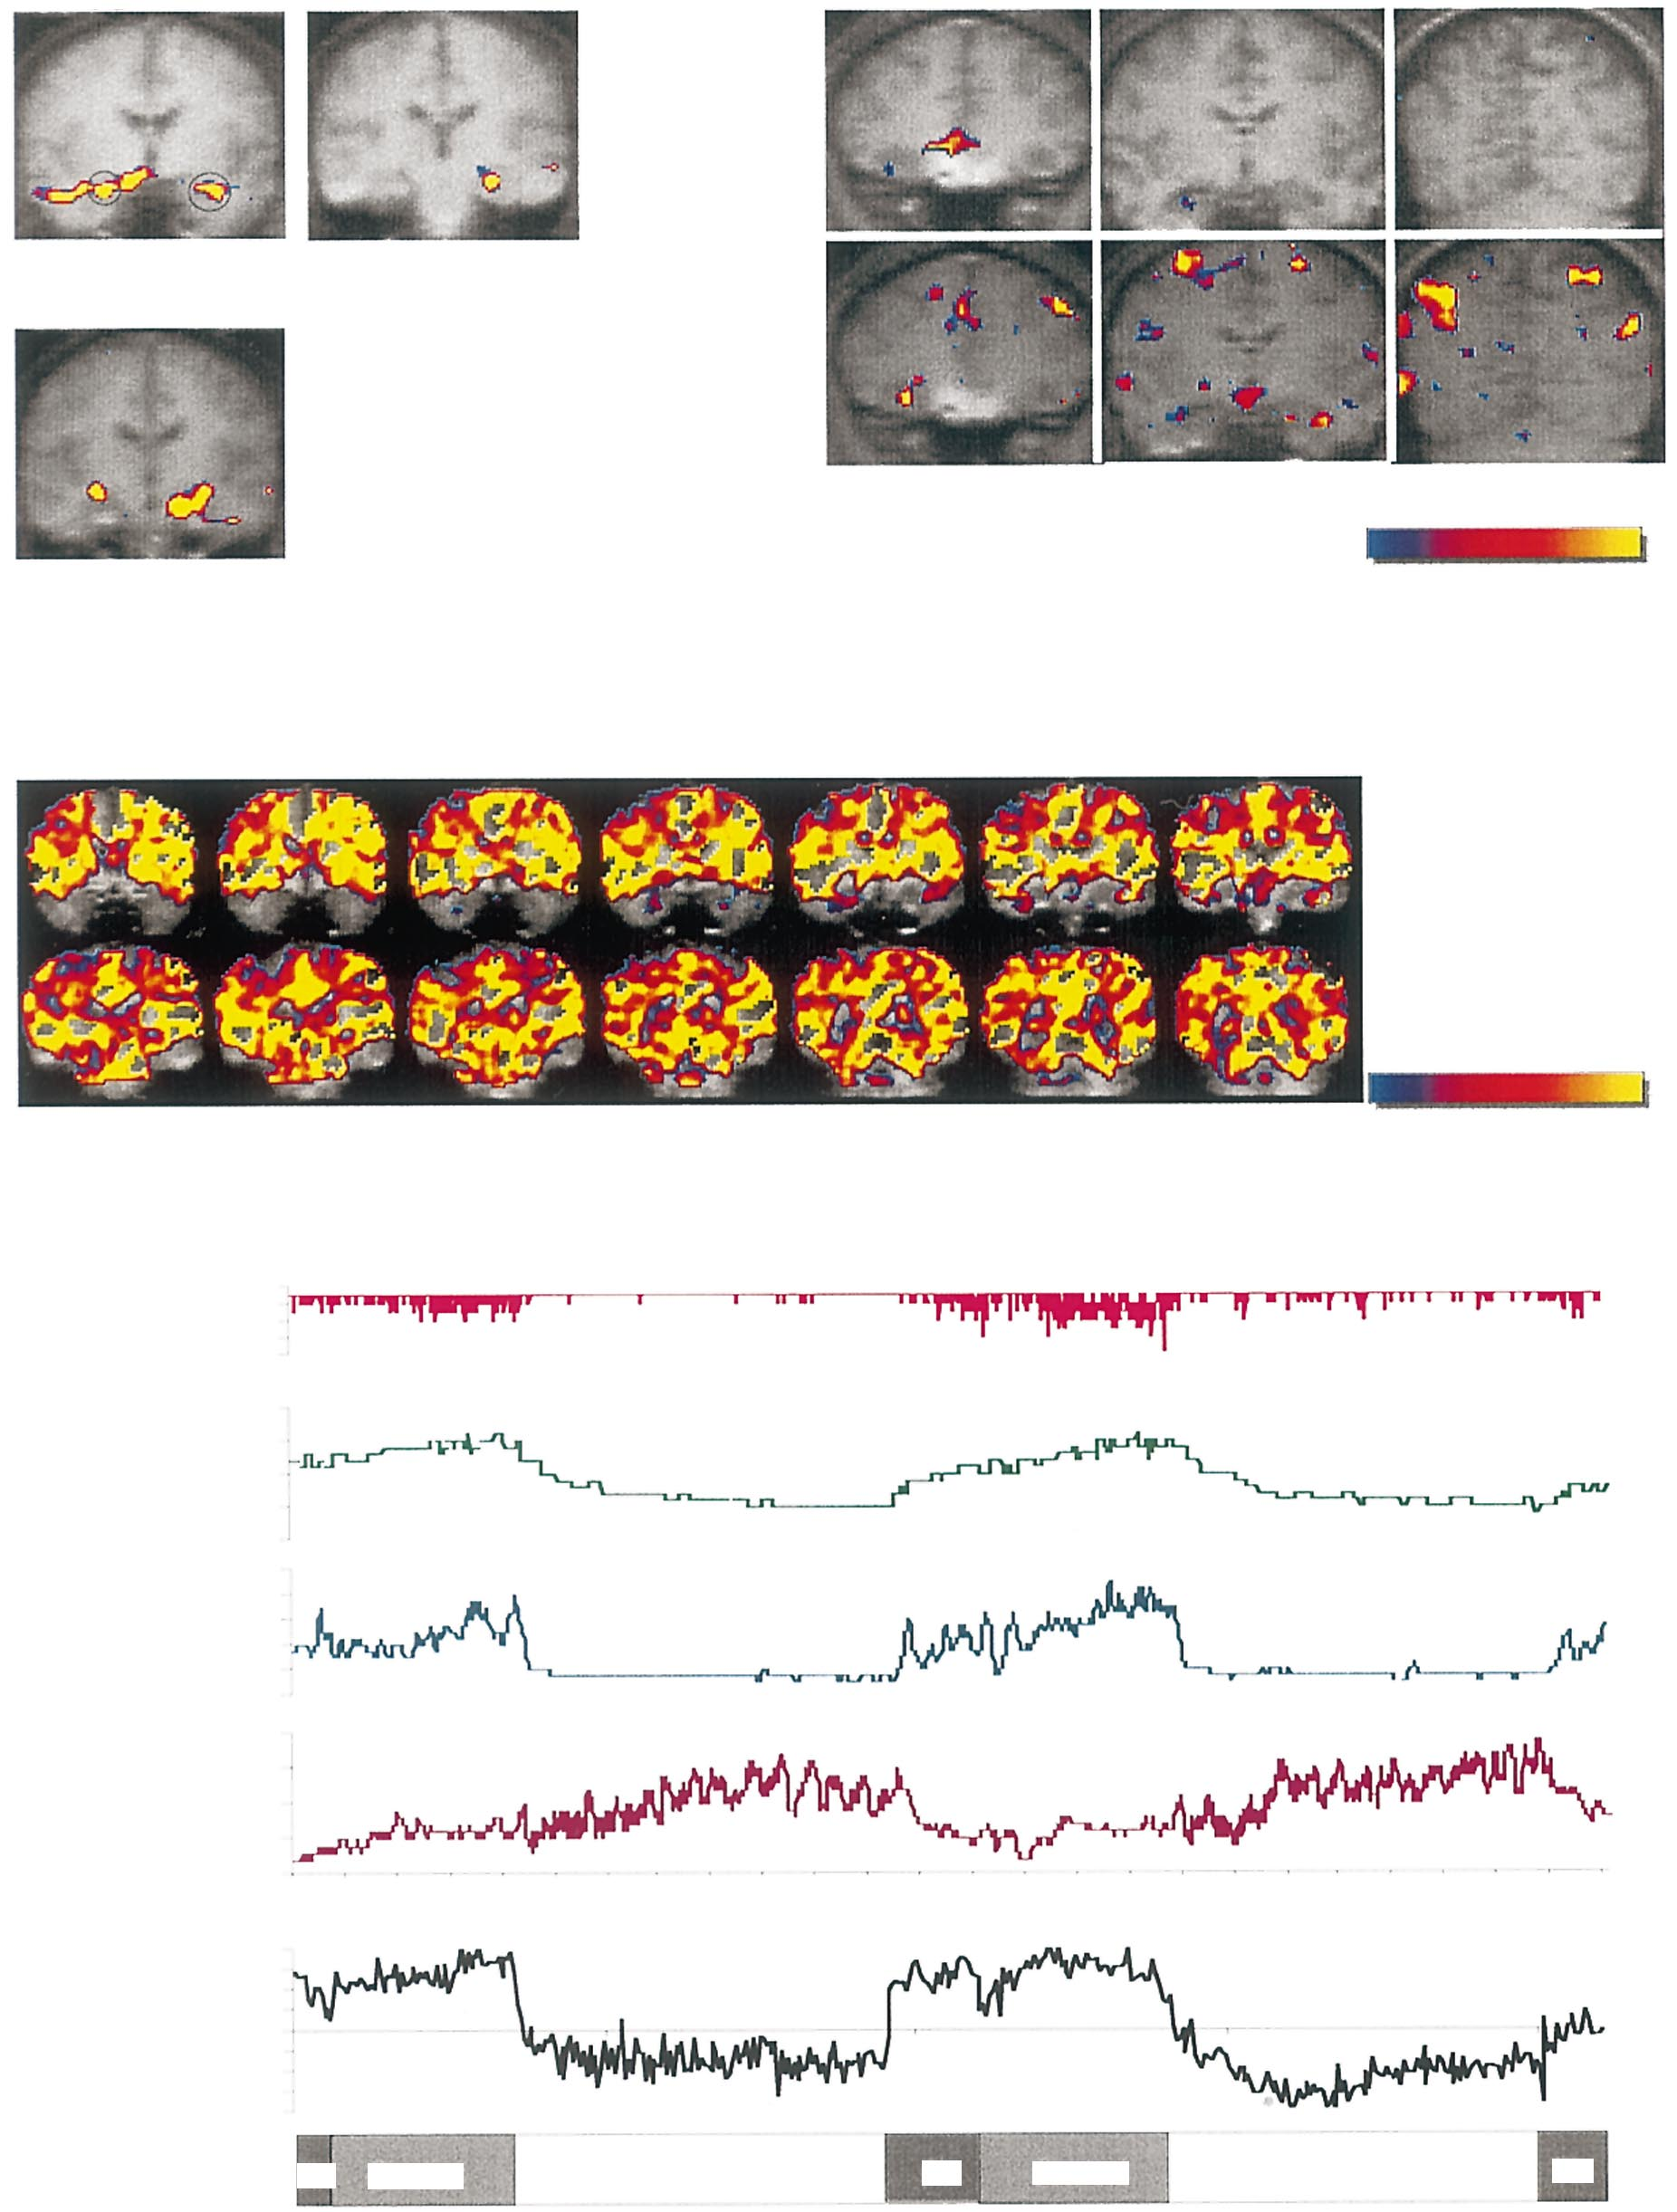 FUNCTIONAL BRAIN IMAGING OF THE RELAXATION RESPONSE (a) Signal increases during meditation Meditation vs Control Amygdala Hippocampus (b) Signal increases with practice Early vs Late Scan 1 n 5 6 mm